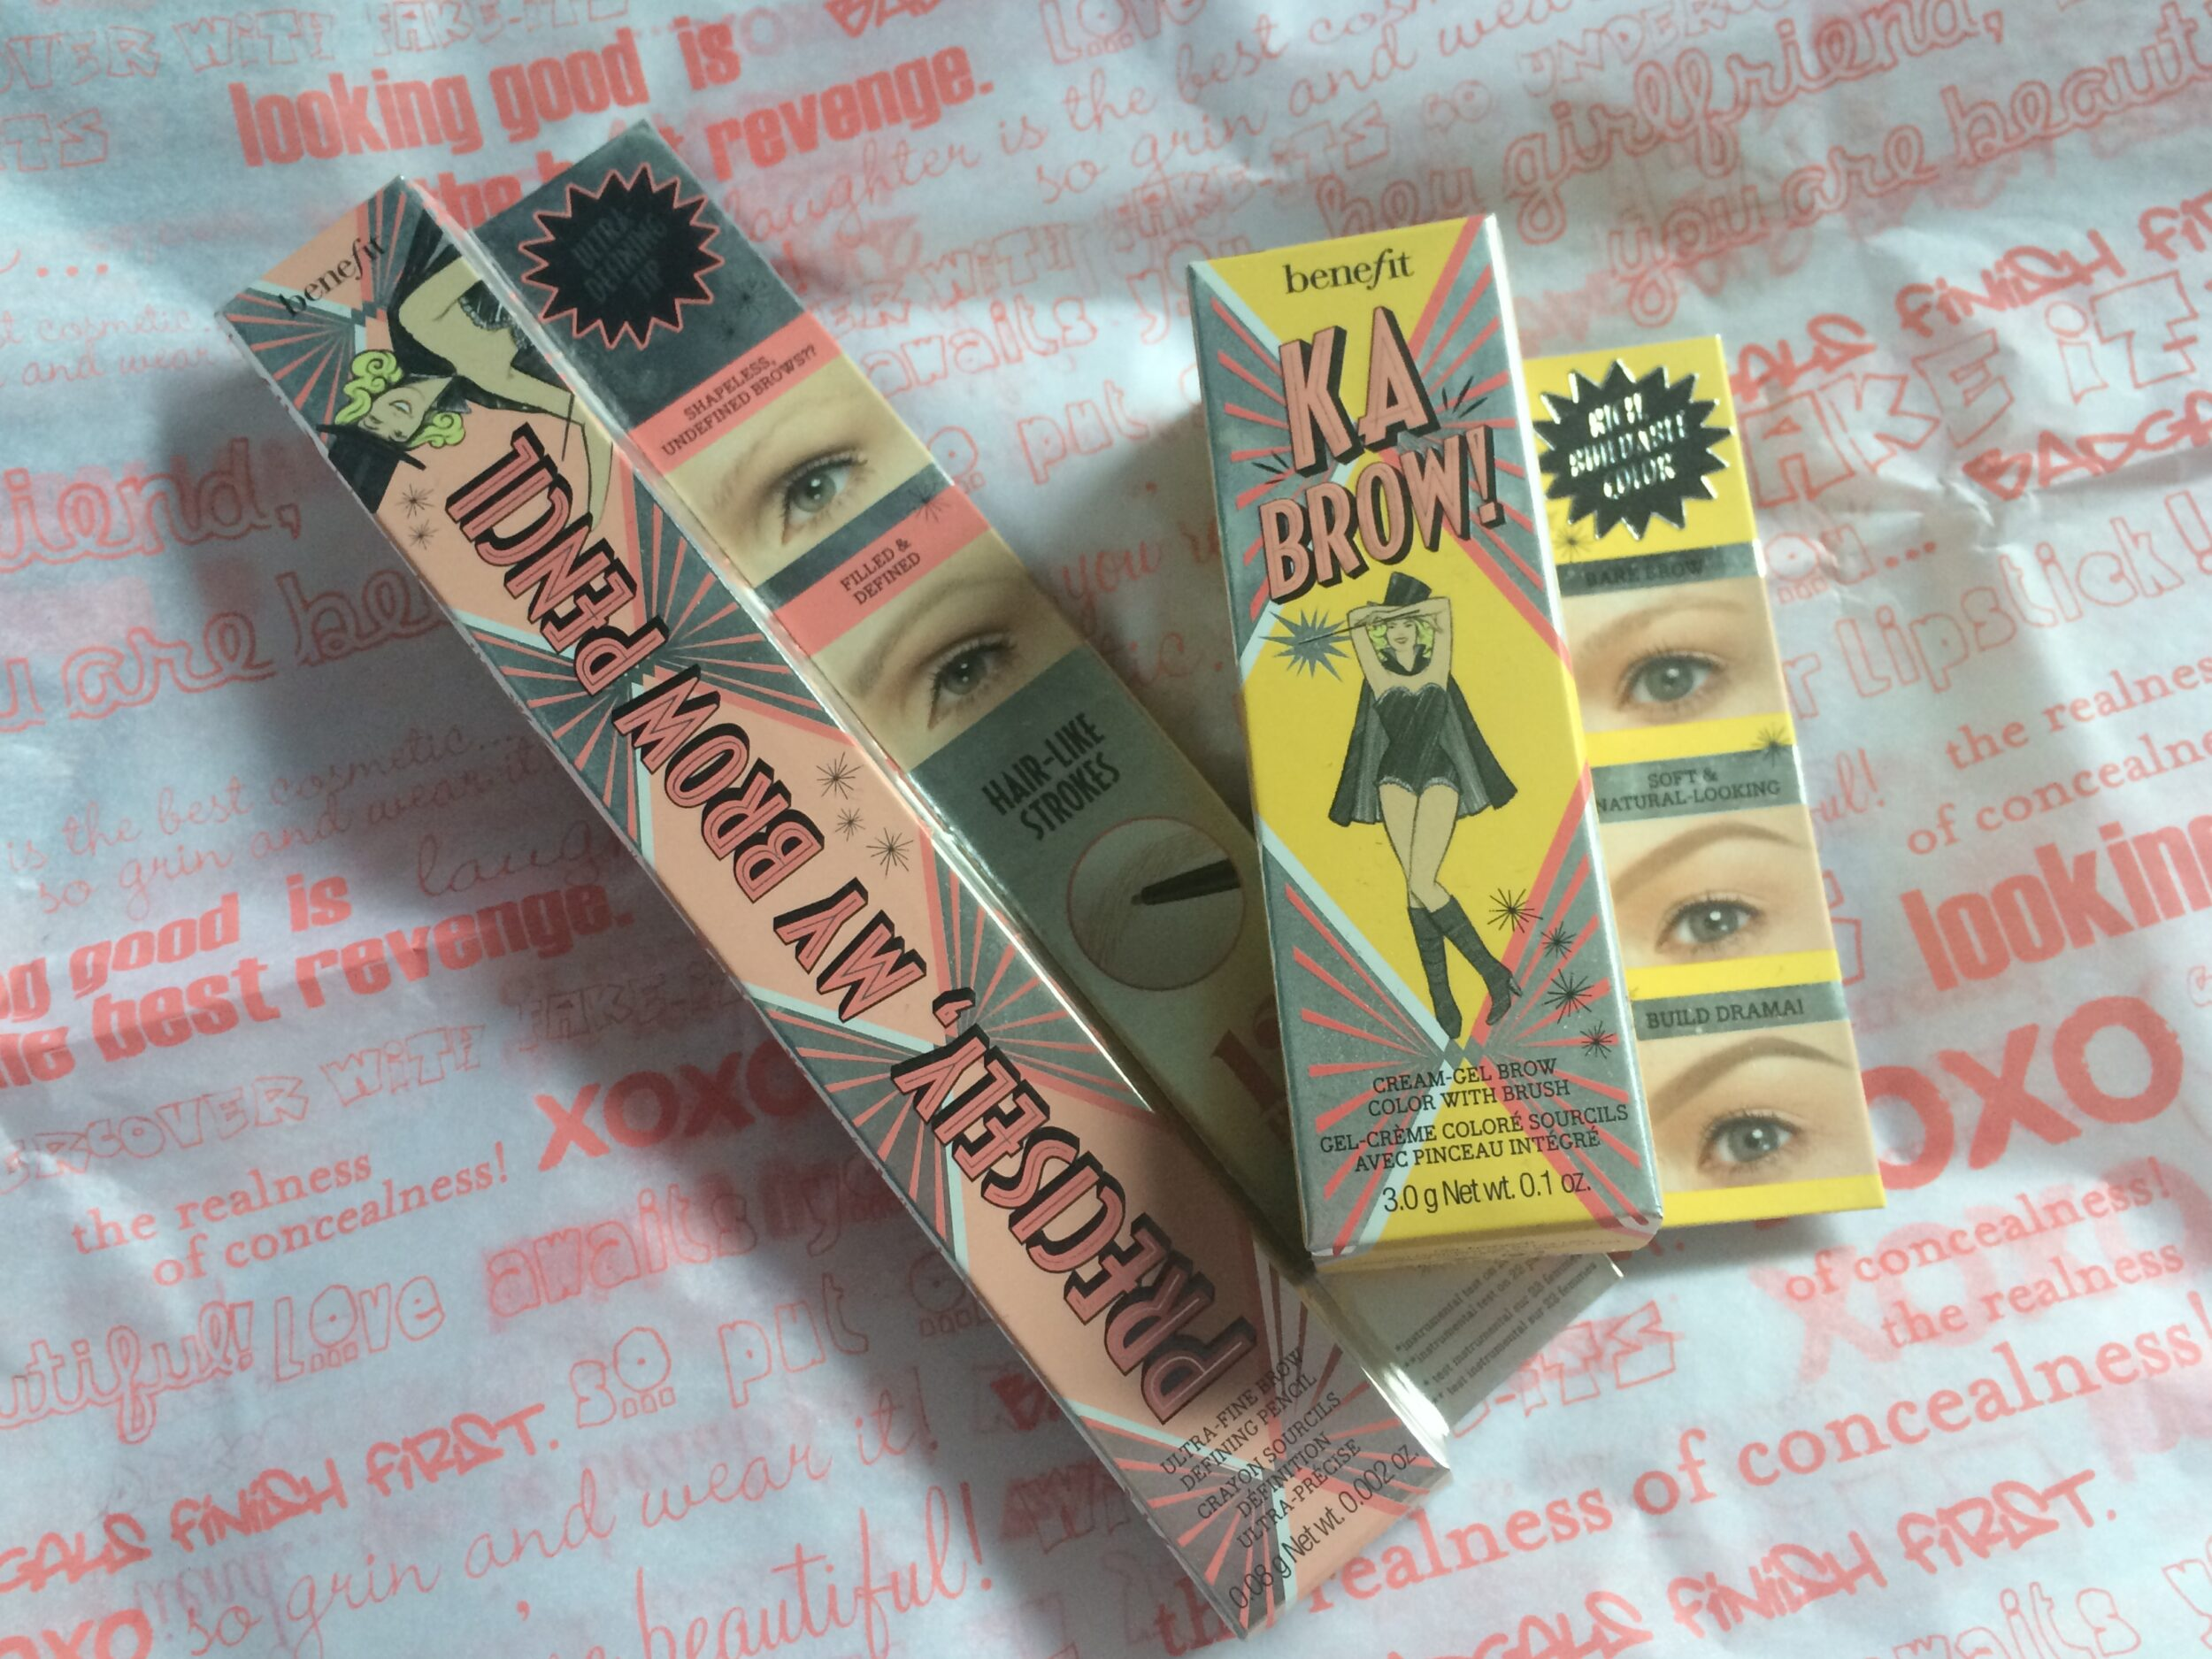 Benefit Precisely, My Brow and Ka-BROW! Cream-Gel